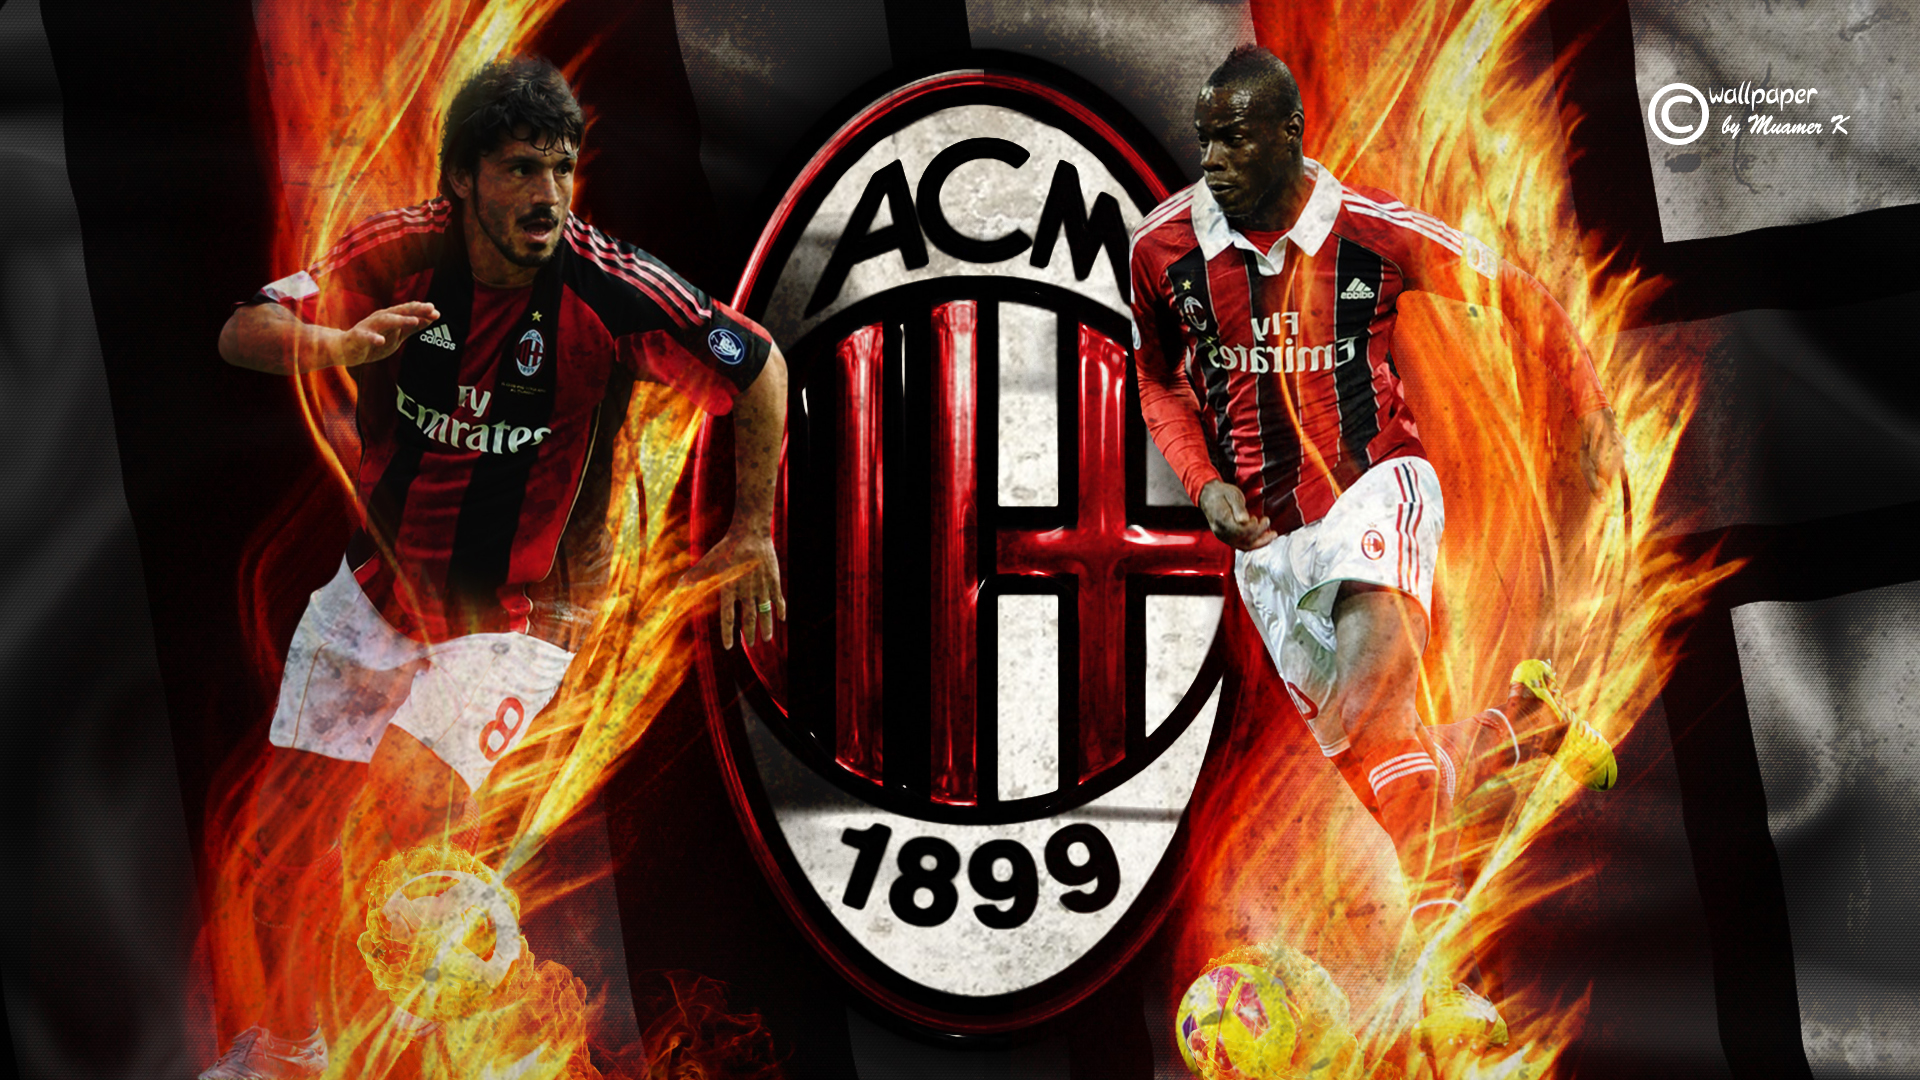 Hd wallpaper ac milan -  Ac Milan Hd Wallpaper By Muamerart